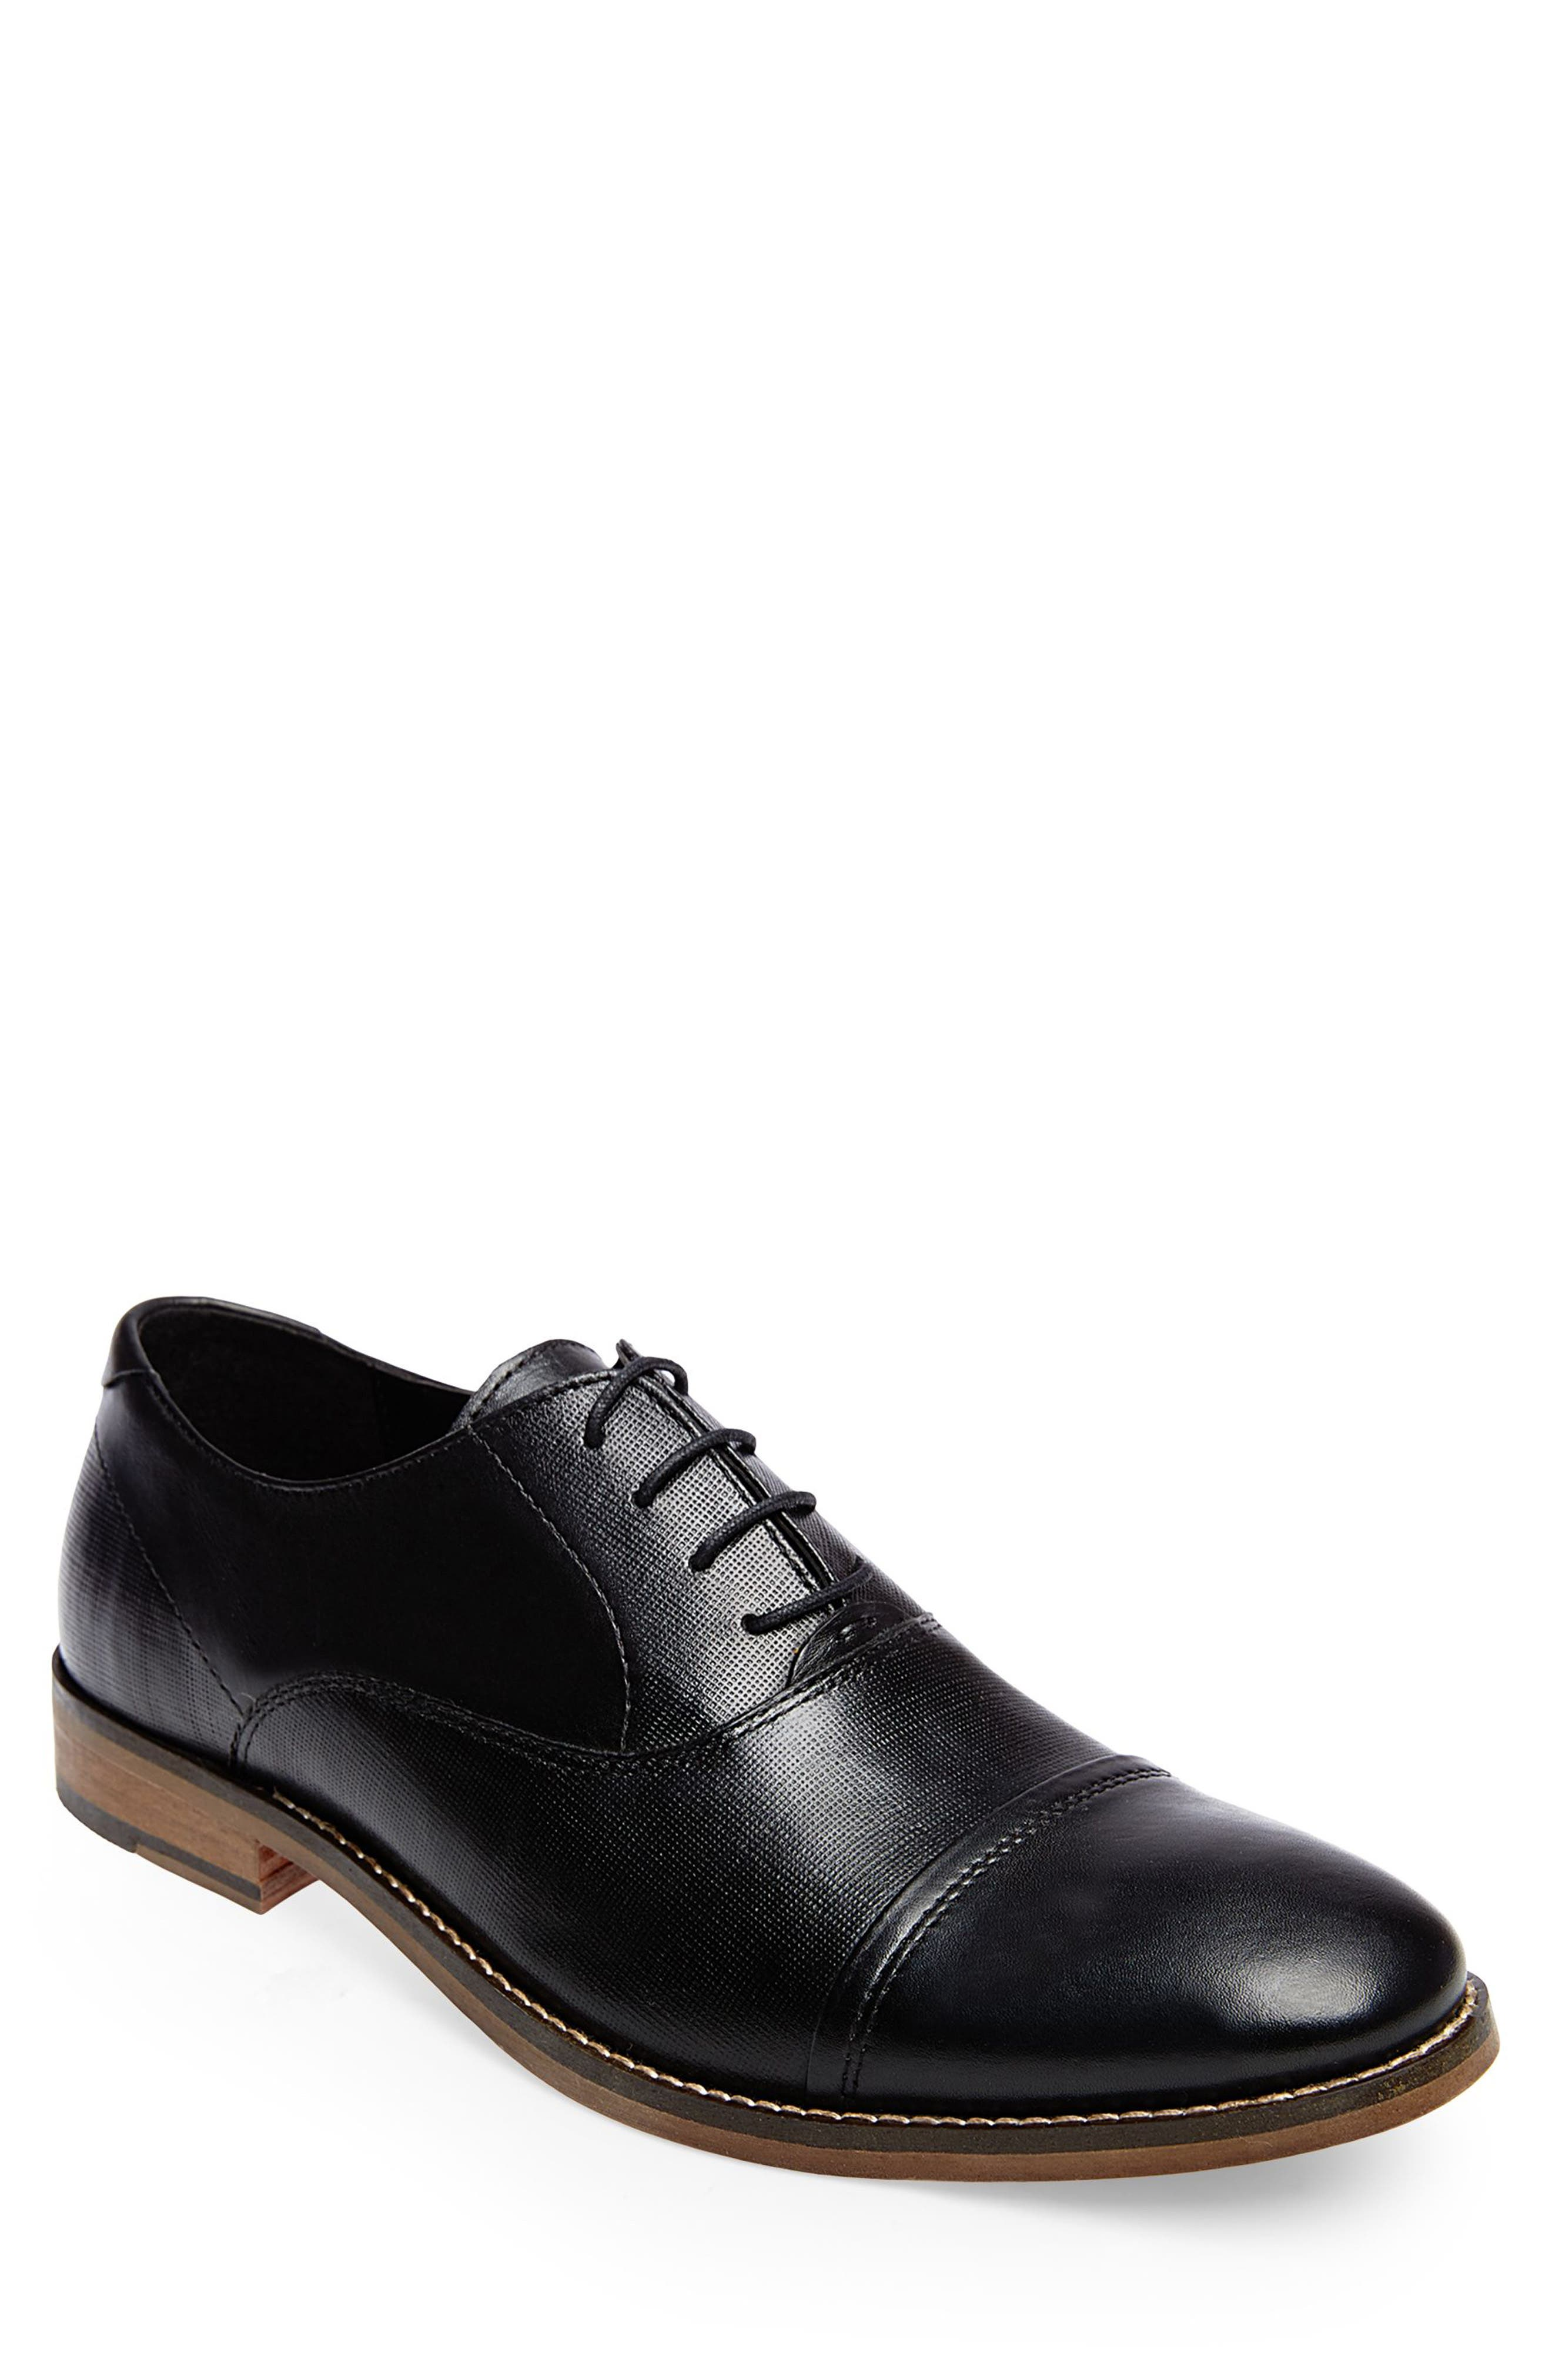 Finnich Textured Cap Toe Oxford,                         Main,                         color, Black